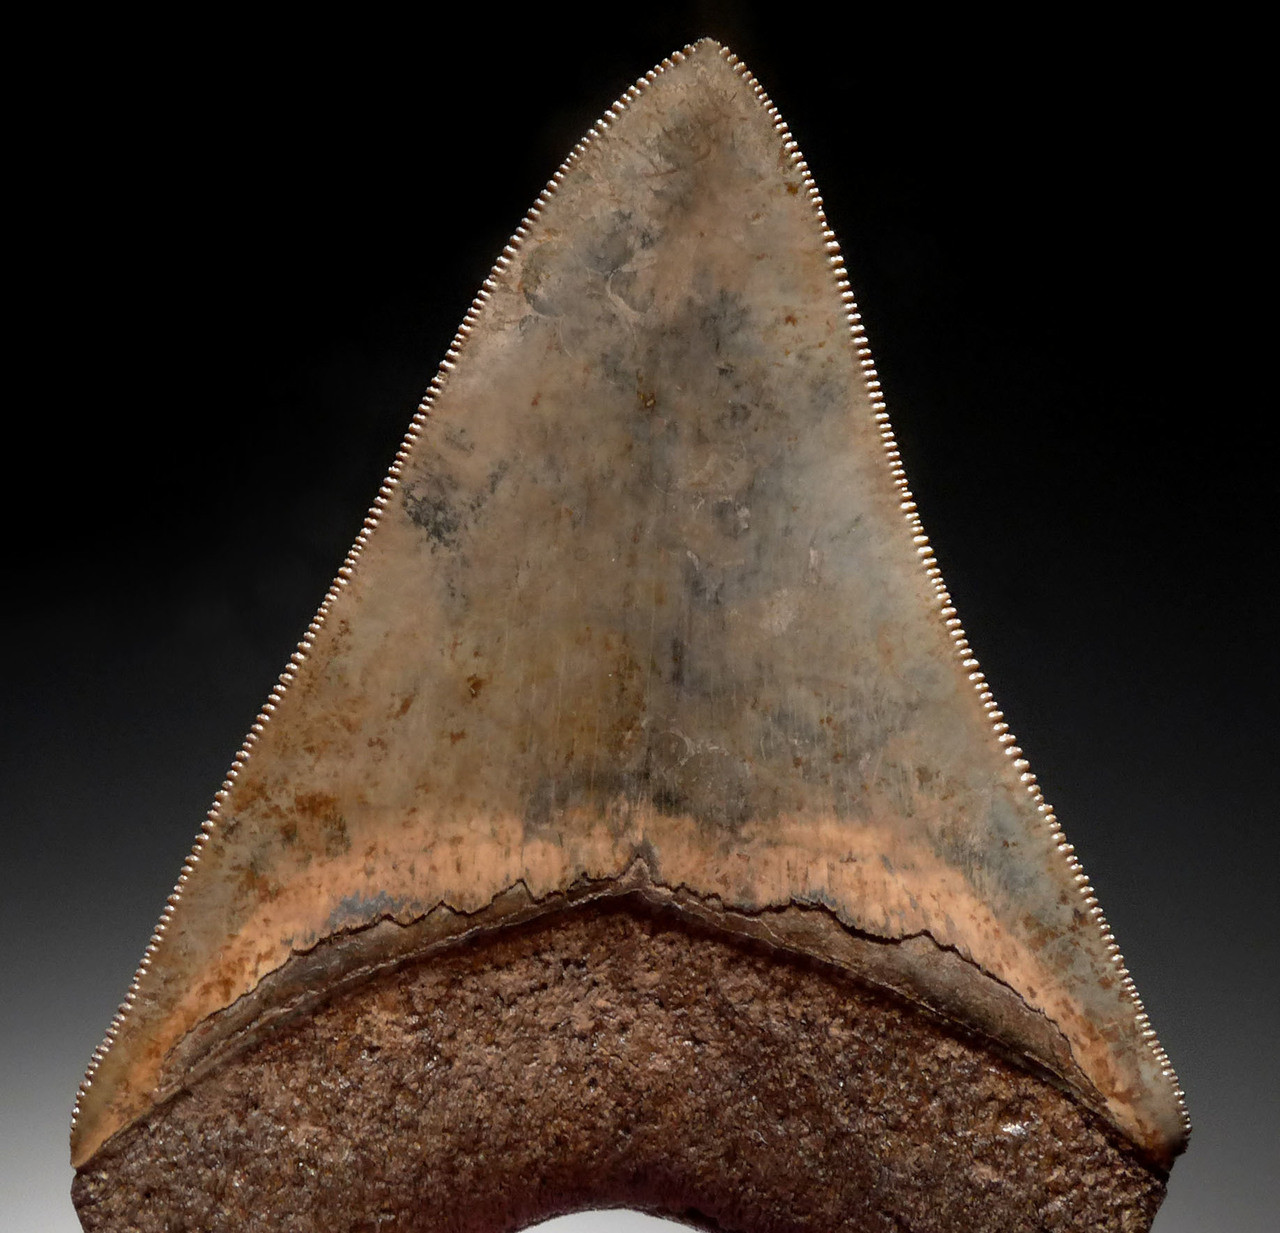 INVESTMENT GRADE 3.85 INCH MEGALODON SHARK TOOTH WITH MOTTLED COPPER RED AND GOLD CREAM ENAMEL *SH6-381